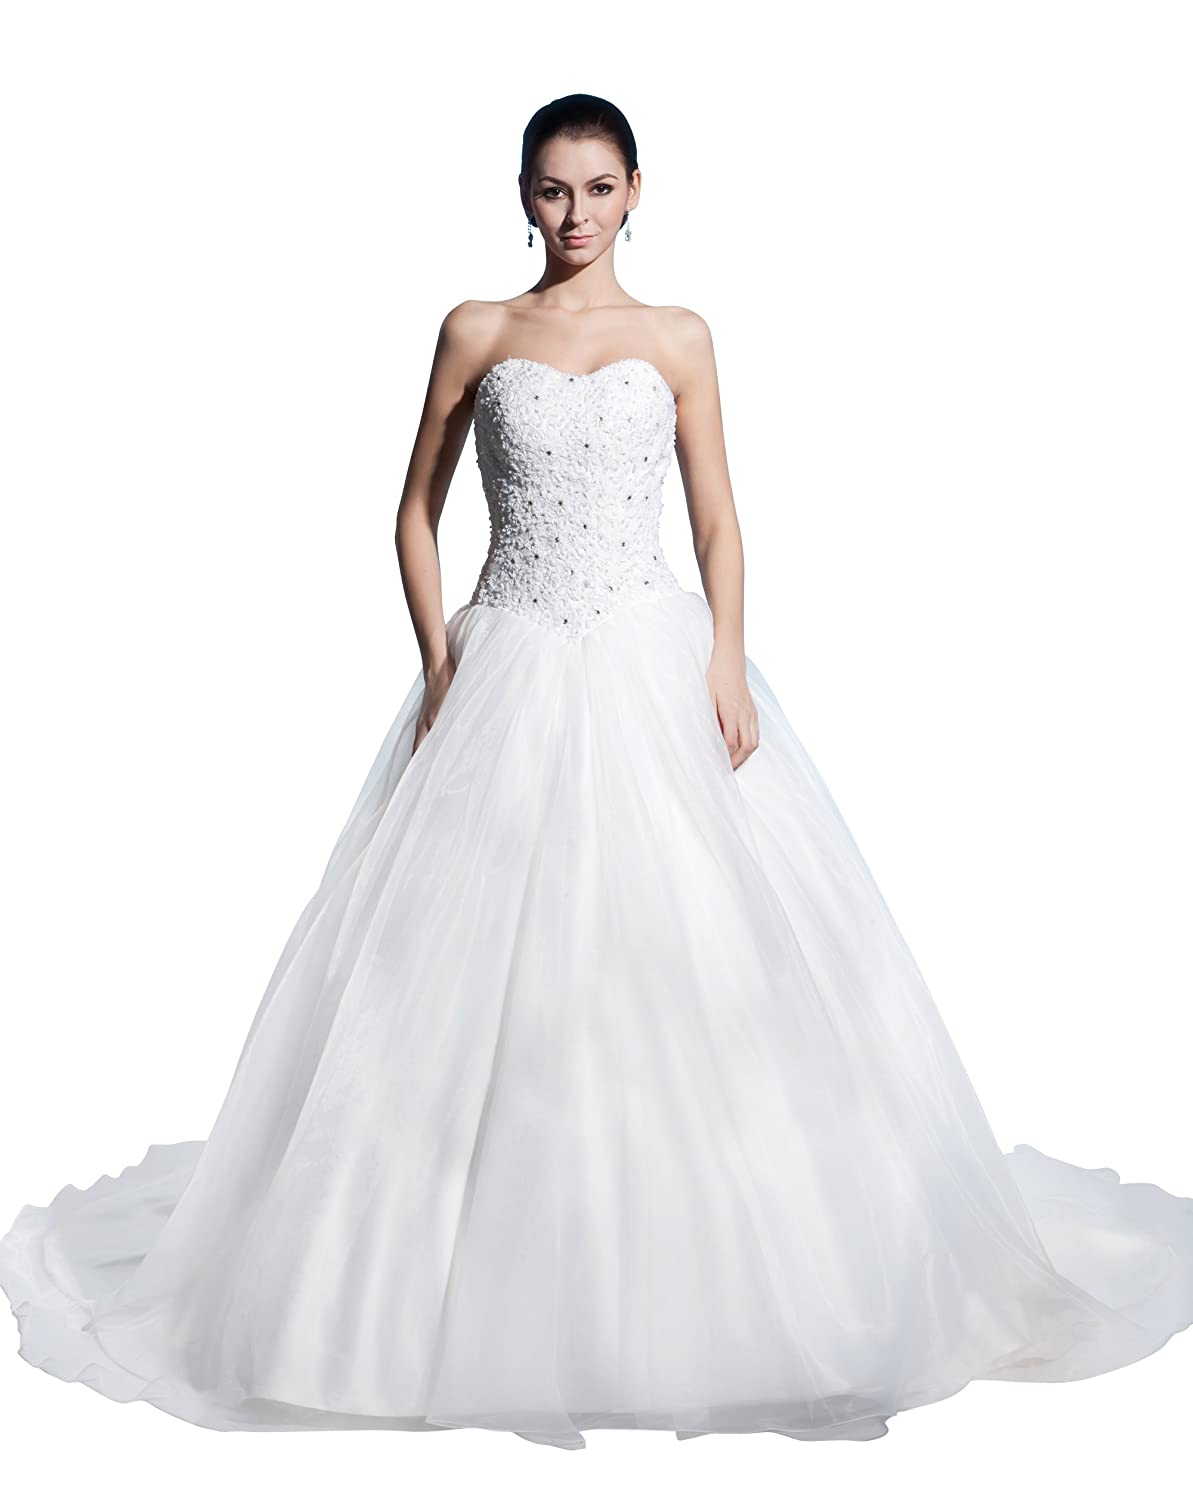 af027bfbb1a9 Wedding : Online Shopping for Clothing, Shoes, Jewelry, Pet Supplies ...